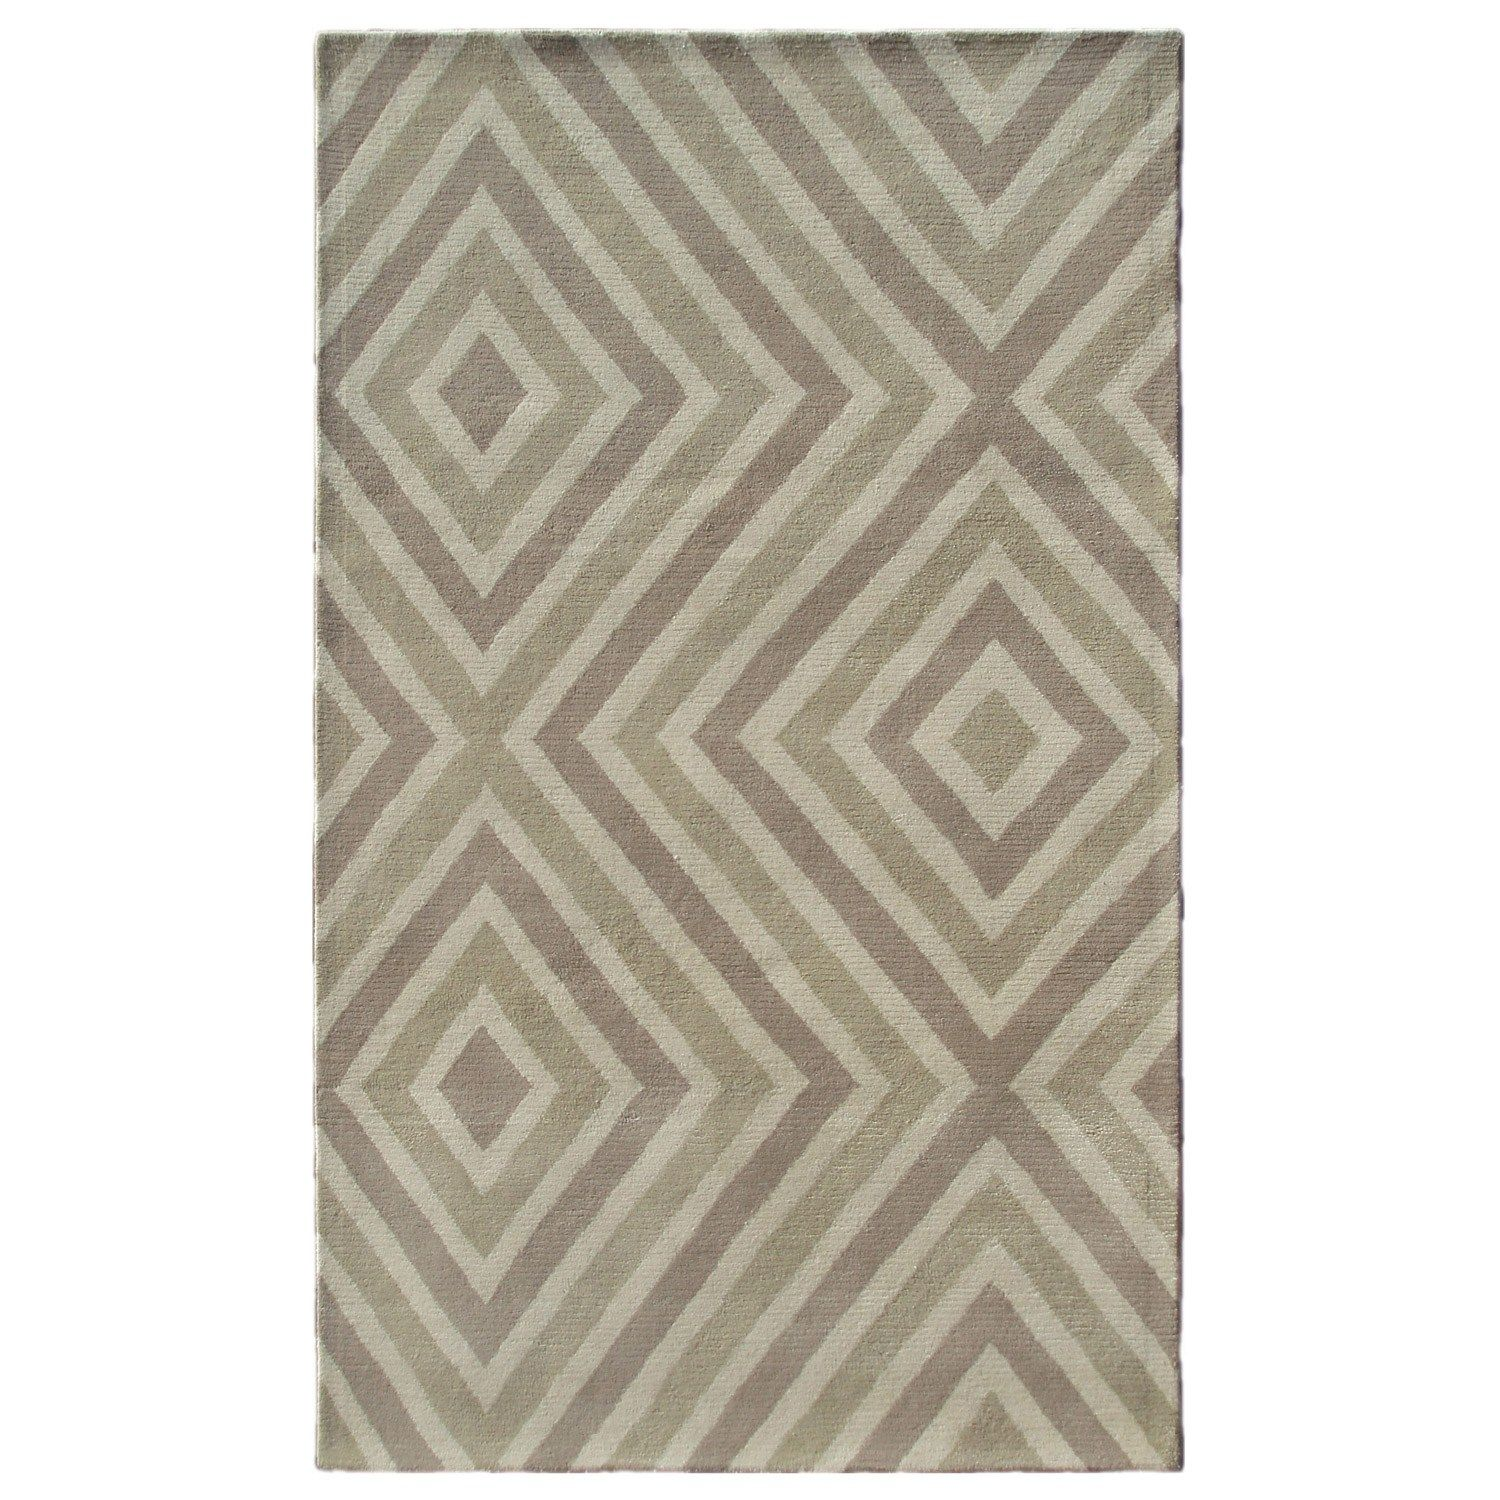 Zuel Beige Tufted Wool Rug